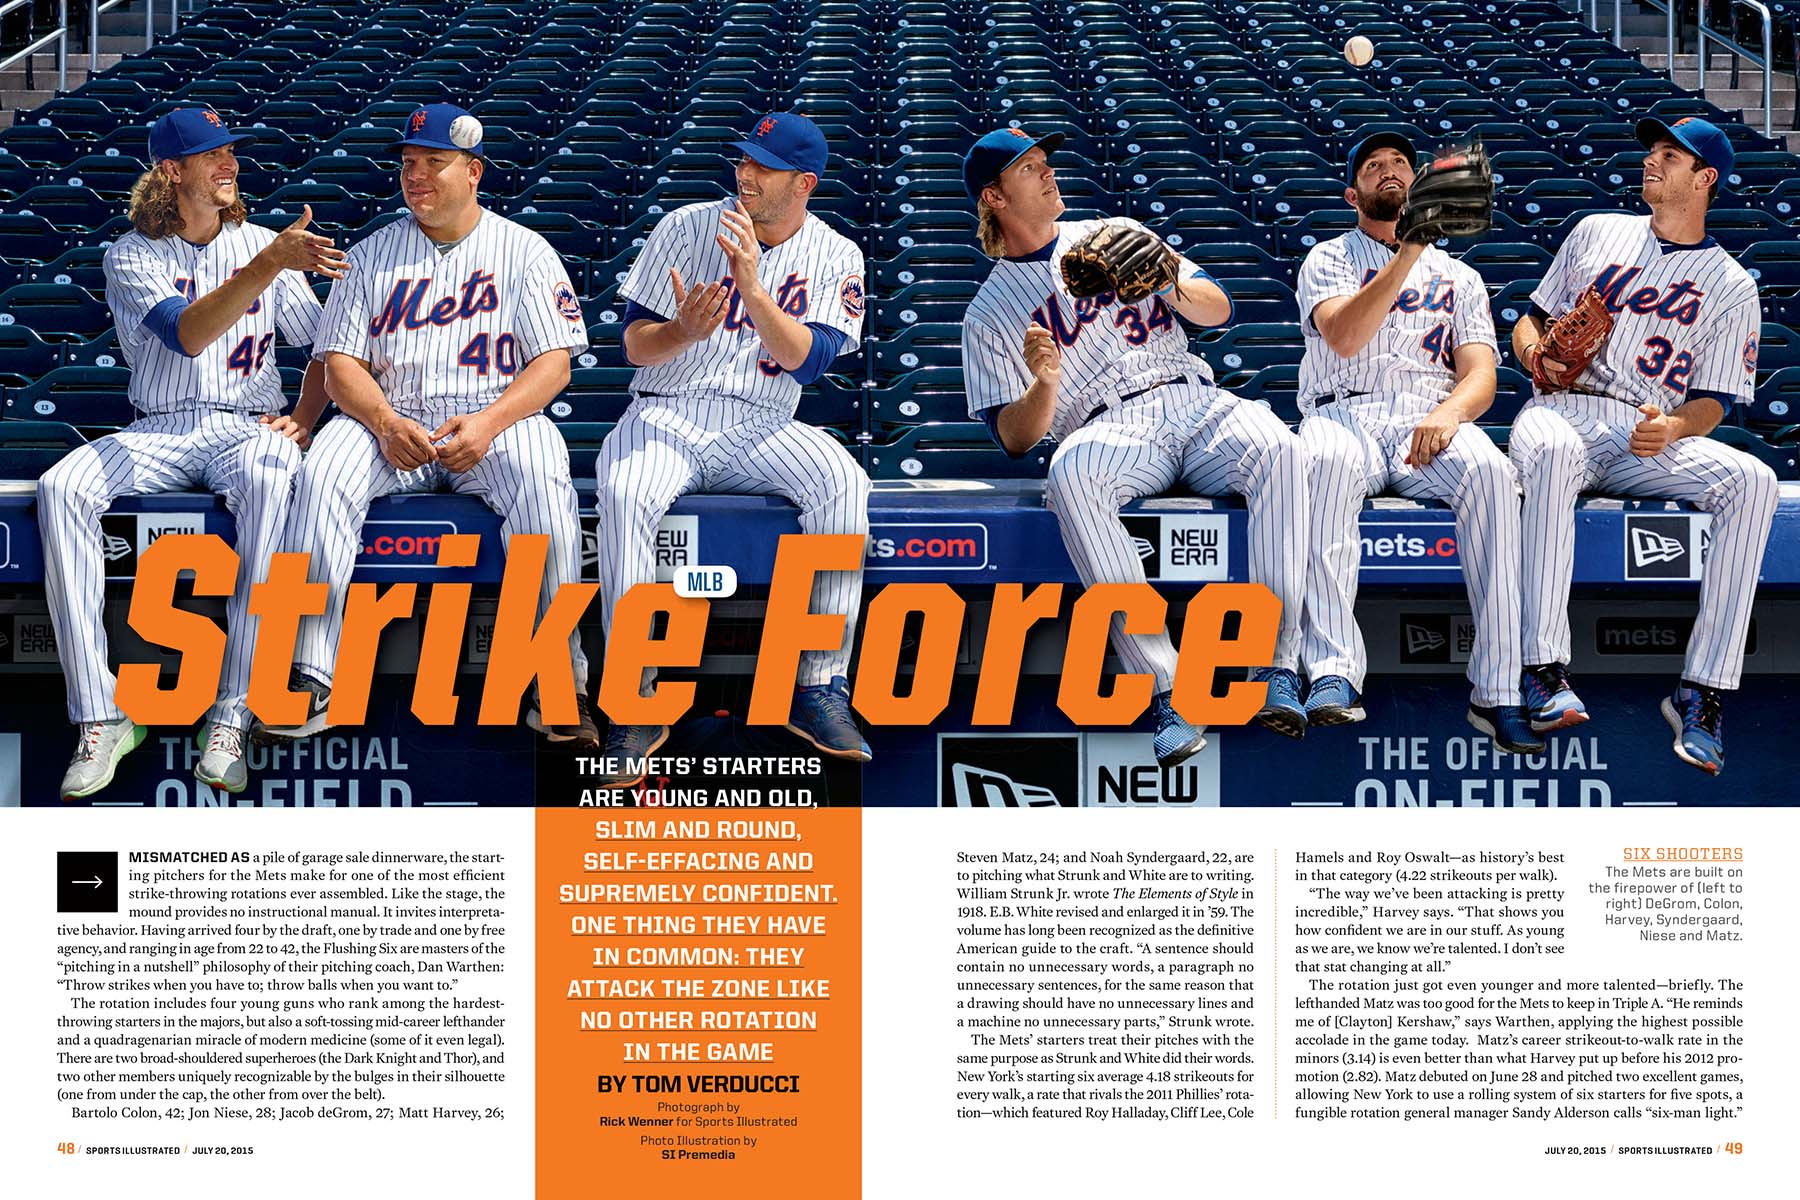 Sports Illustrated - NY Mets